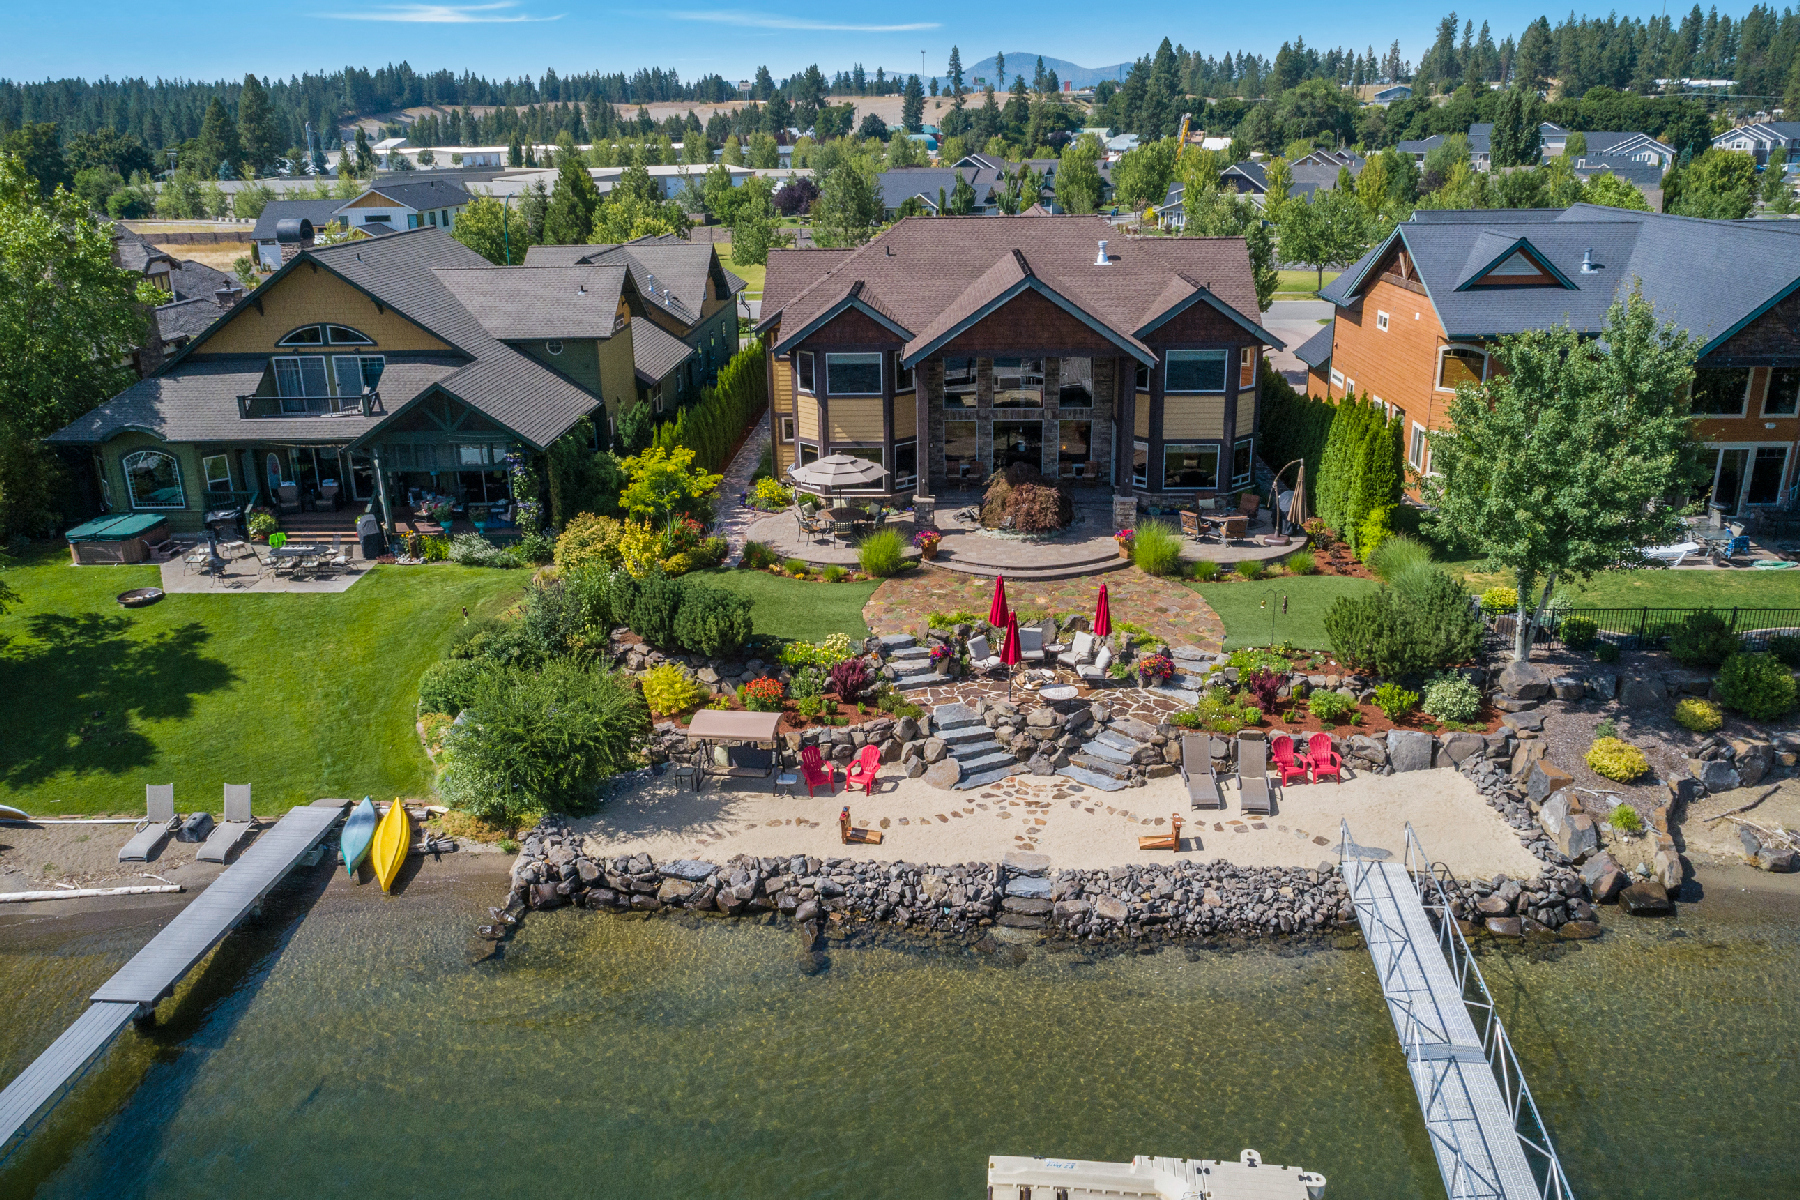 Single Family Homes for Sale at Coeur d'Alene's Best! 4861 W Mill River Ct Coeur D Alene, Idaho 83814 United States